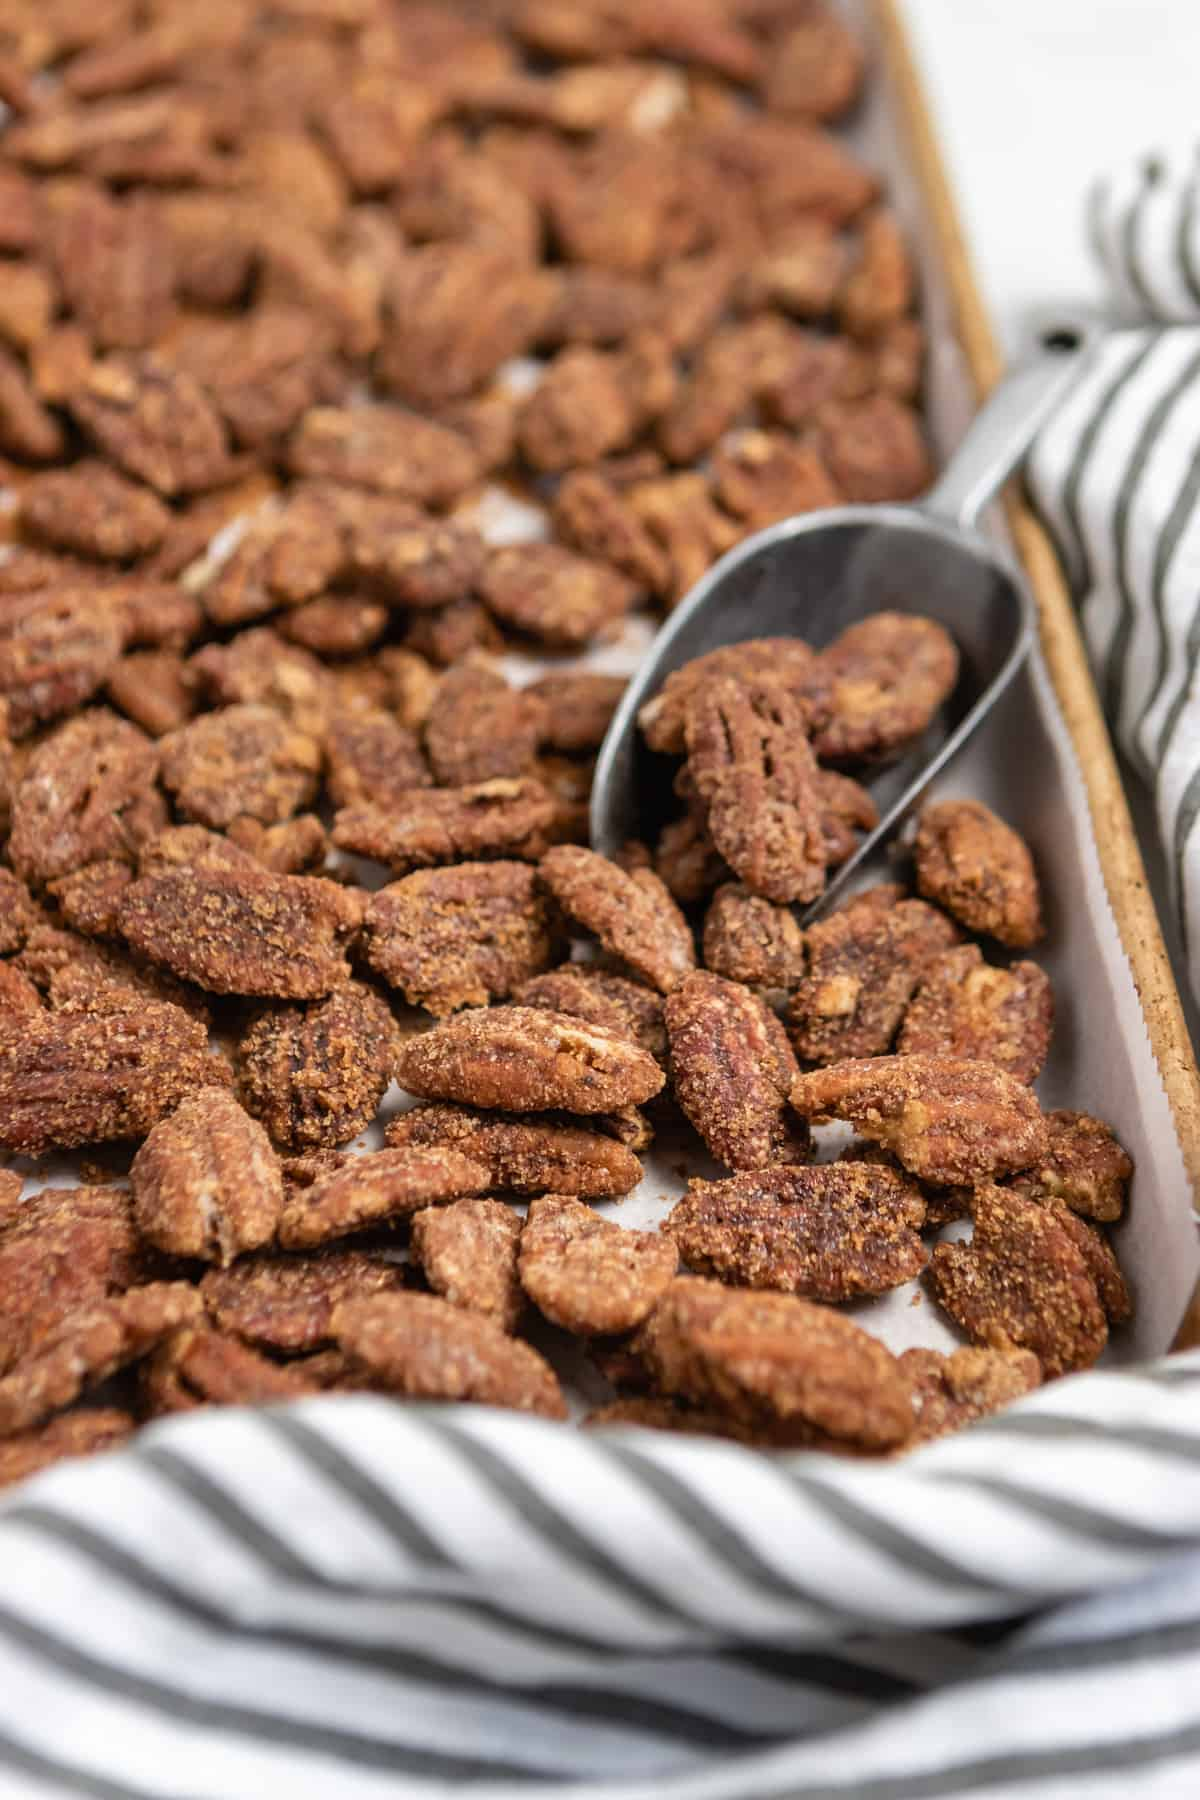 Sheet pan with pumpkin spiced cinnamon pecans and scoop.